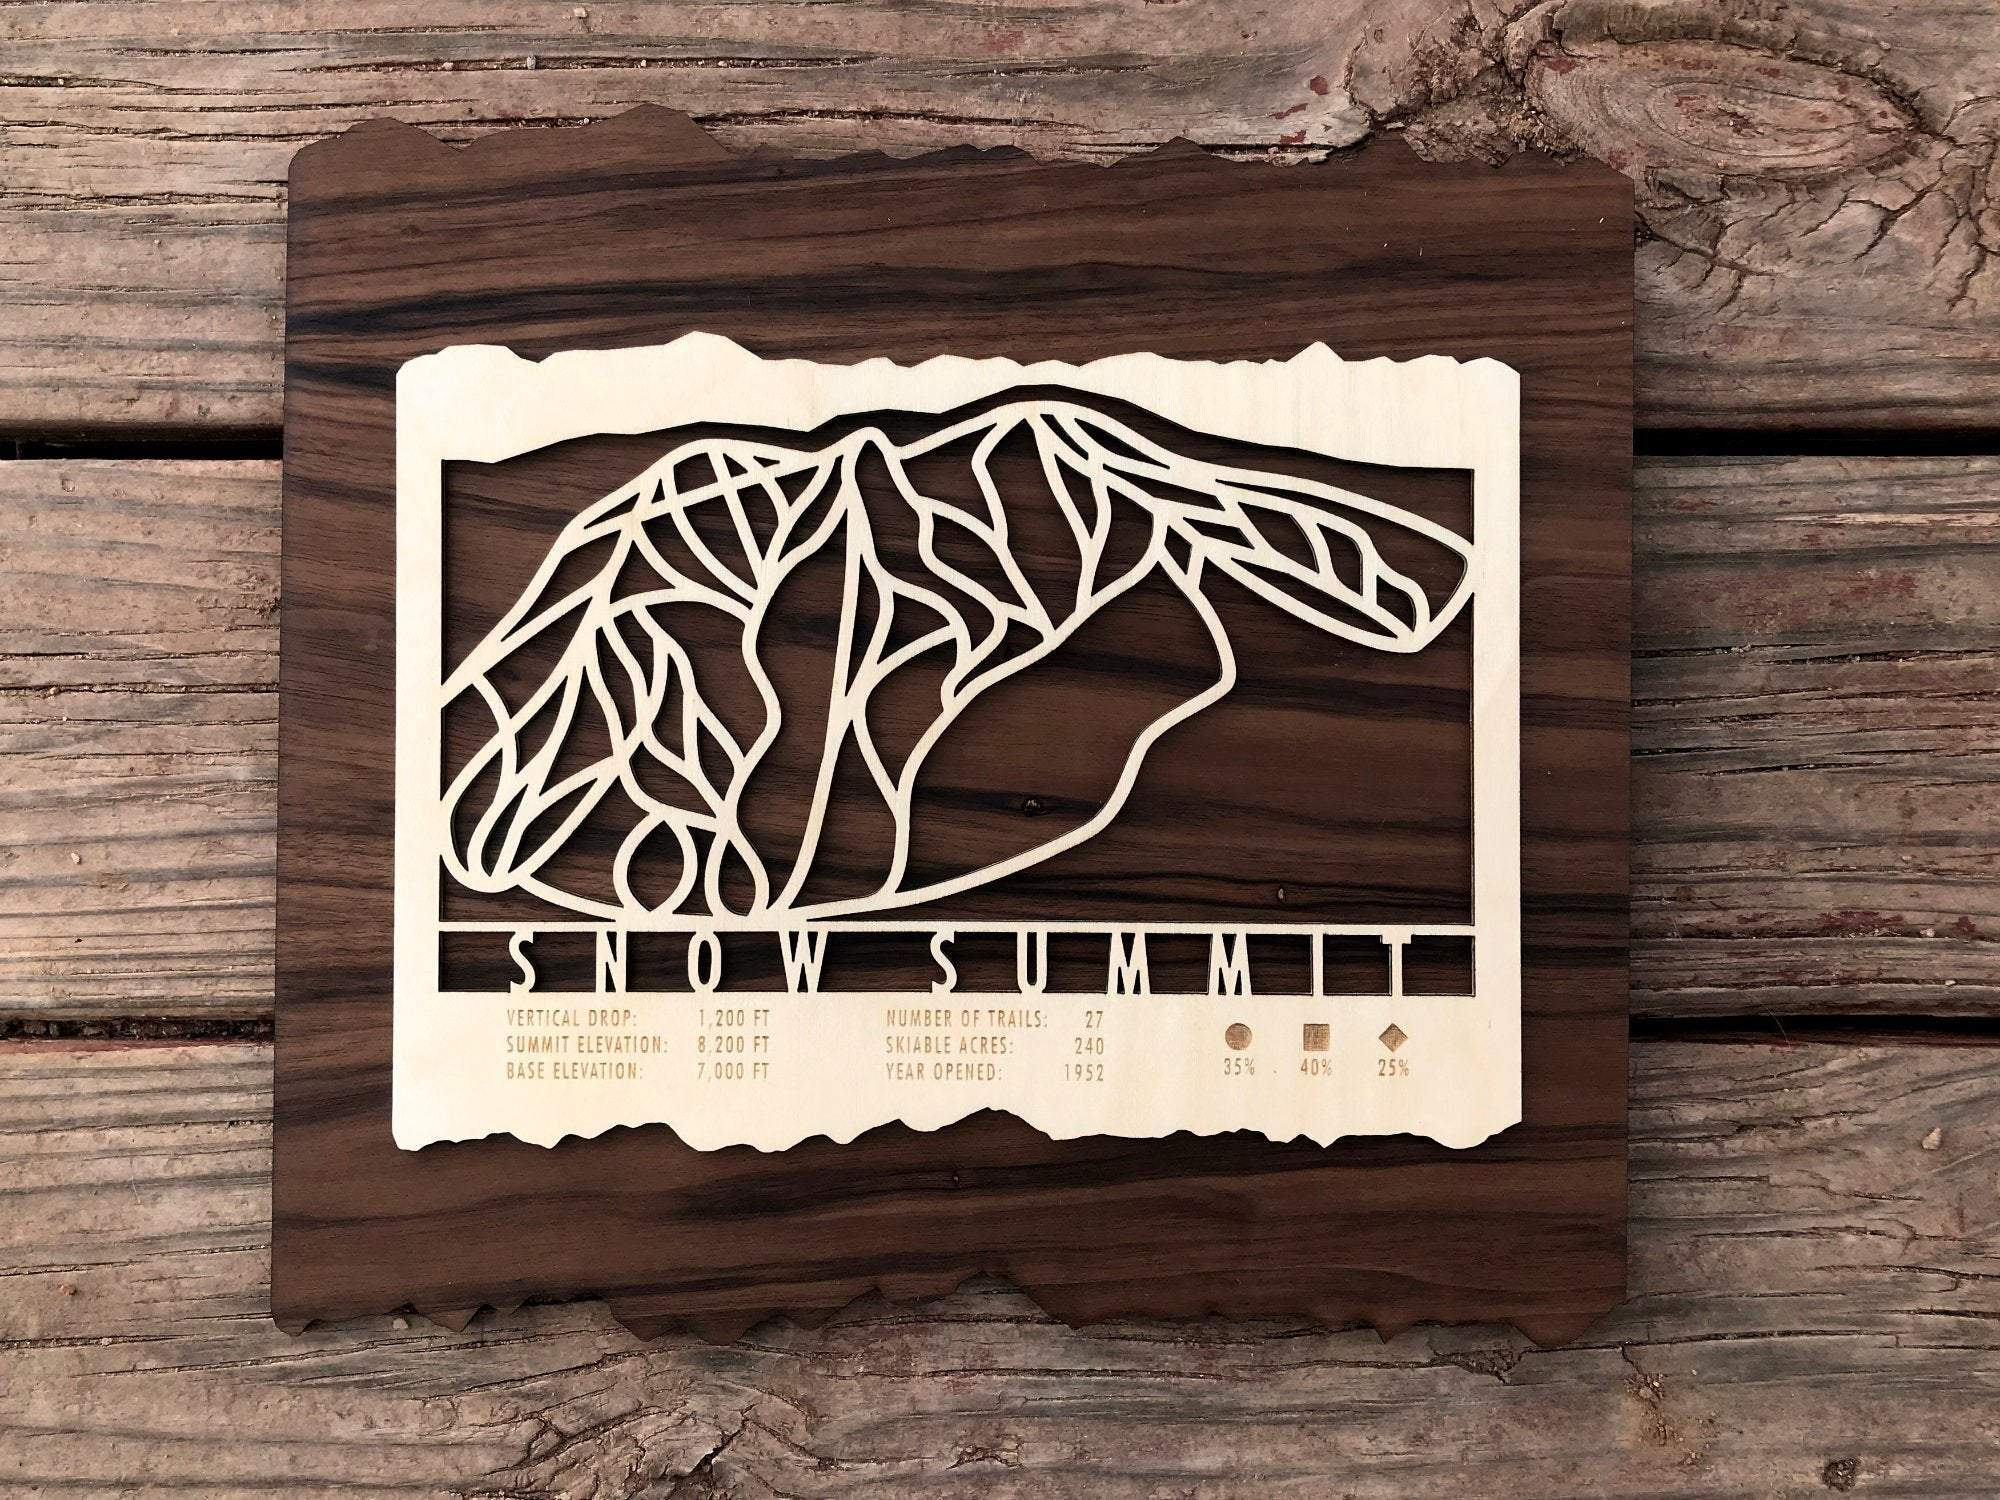 Snow Summit Ski Decor Trail Map Art - MountainCut